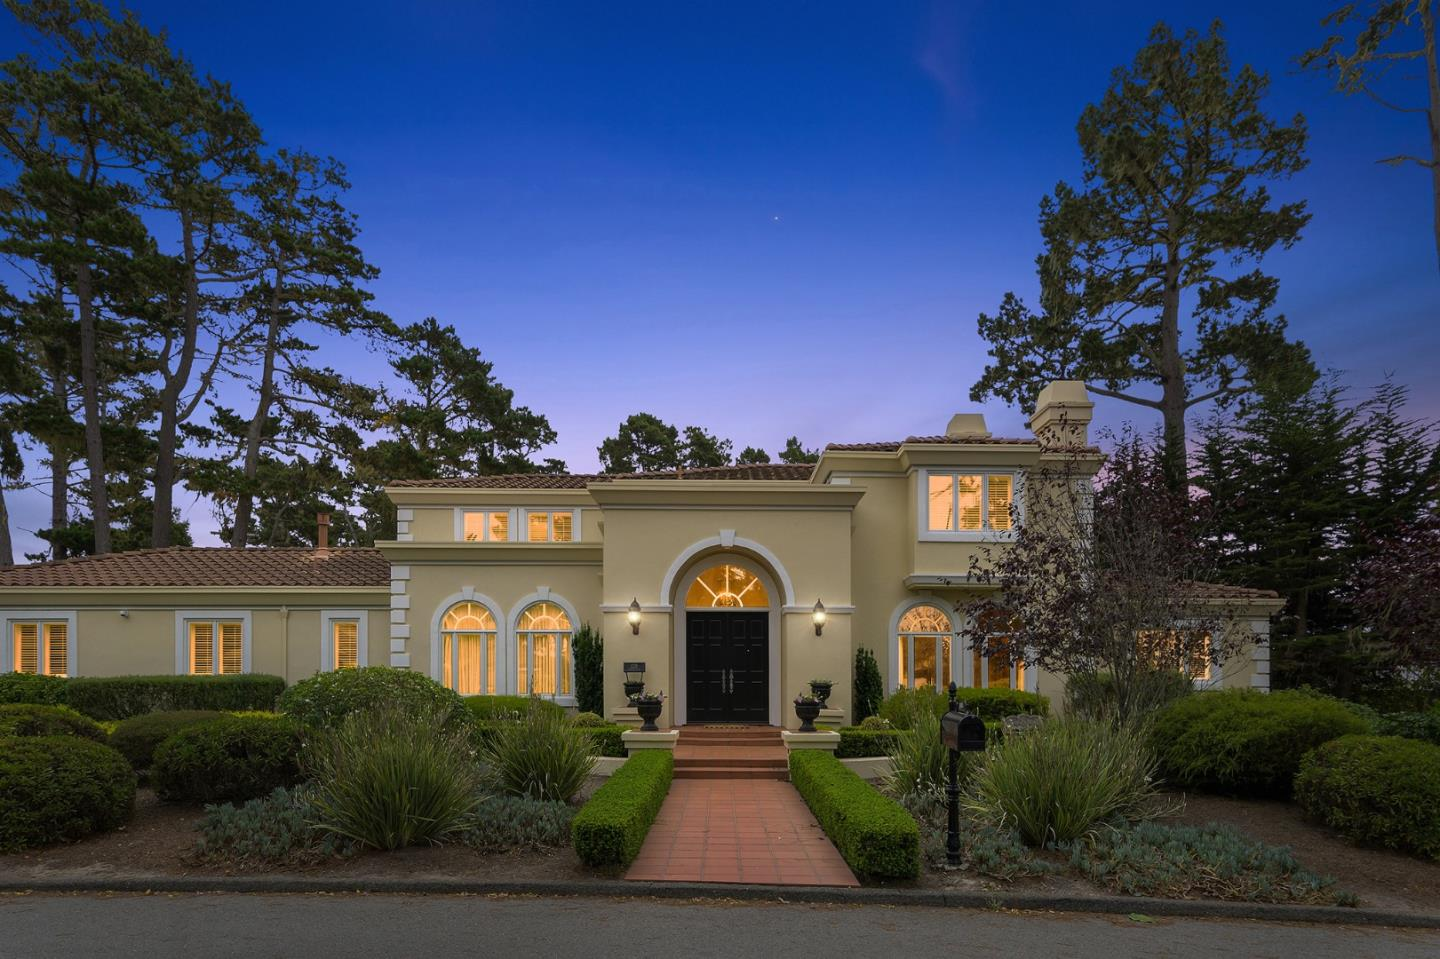 Elegance delivered!  The sophisticated home stands proudly on a level, manicured lot in a prime location near both Spyglass Golf Course and Pebble Beach Golf links, and less than 1 mile to the shores of the Pacific Ocean.  Offering a play of spaces, the stunning living room is grand, filled with light, ideal room to gather with friends, yet offering more private rooms like the formal dining room, an office, and the warm den to watch TV and cozy up while the fireplace runs.  Offering a main floor suite, allowing you to live all on one floor.  On the second floor larger, a principal suite and a generous sized guest room with ensuite bathroom.  Step outside to the sheltered courtyard that wraps around the entire backyard.  Al fresco dining all season long on this patio, take in the rose garden that fills the space, at the end of the day, simply pull your chairs up fireside and relax. The well maintained home provides the perfect setup for a second home or make it your full time residence.